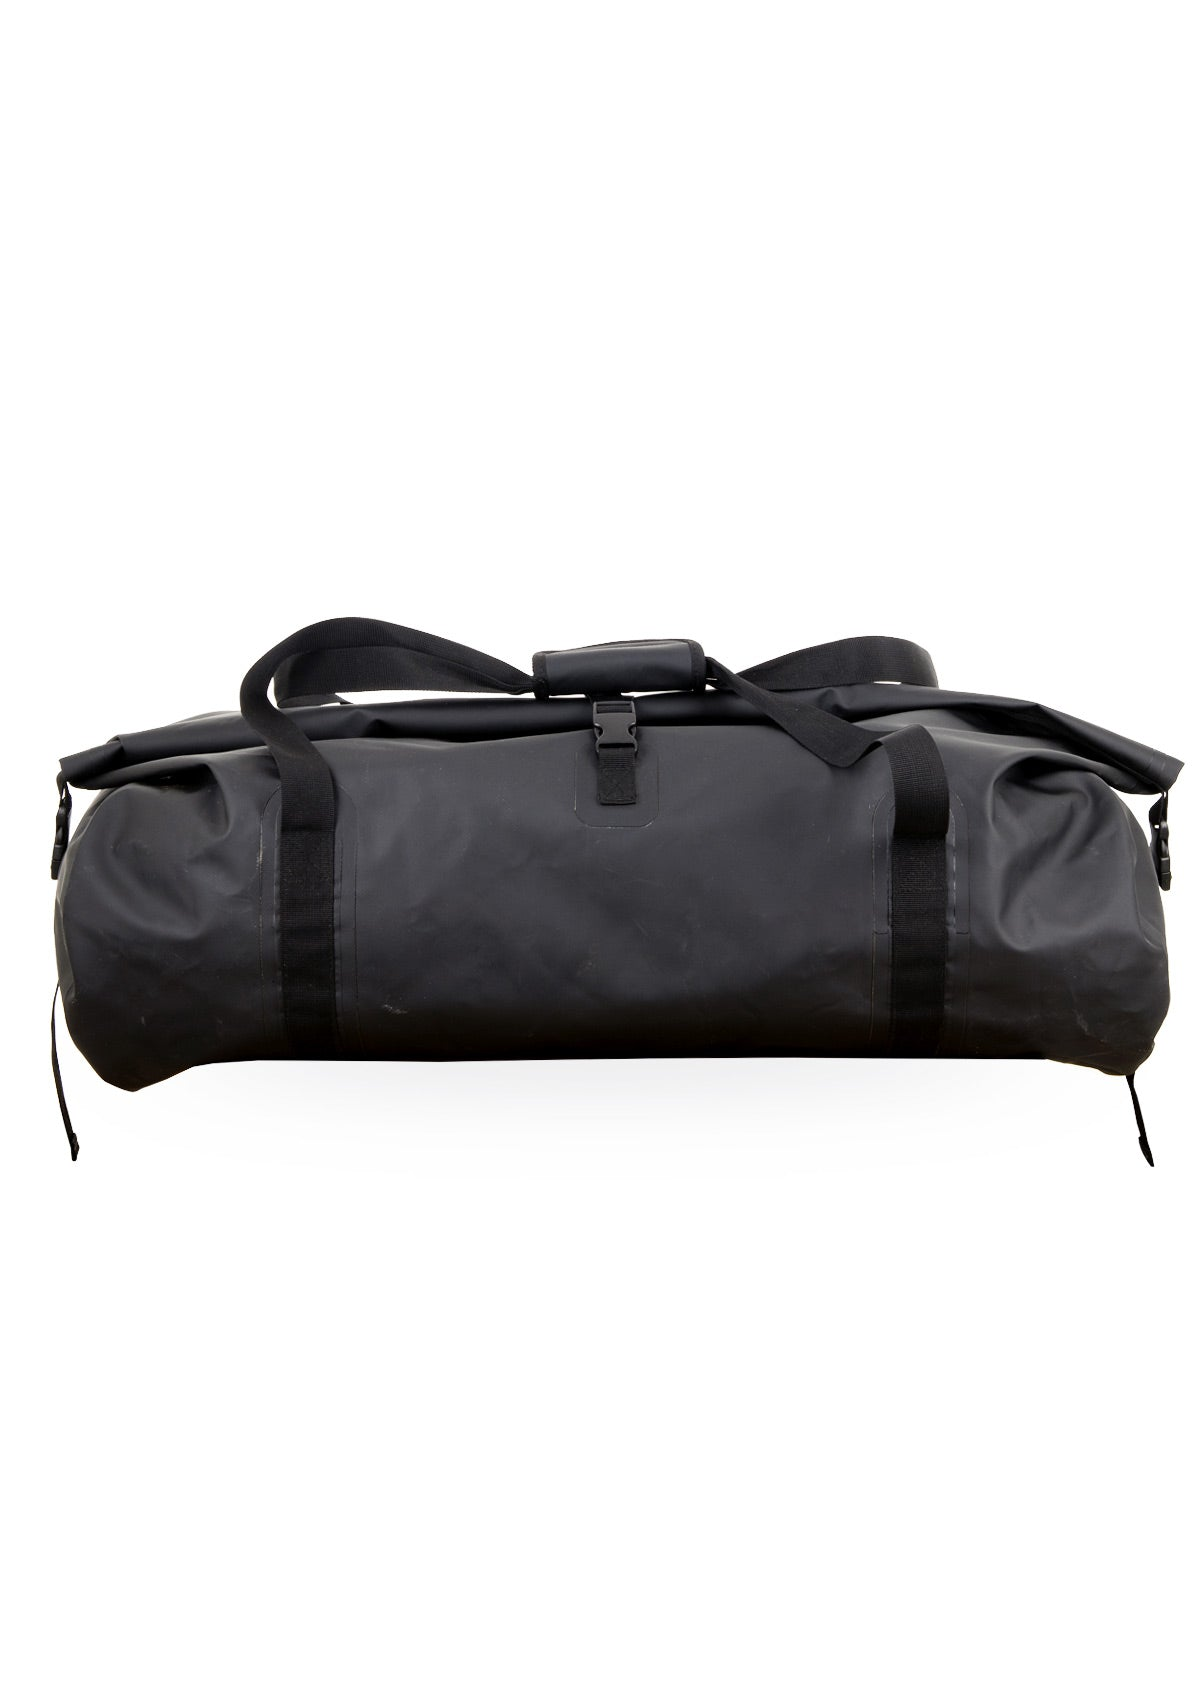 needessentials dry bag duffel travel surfing non branded black